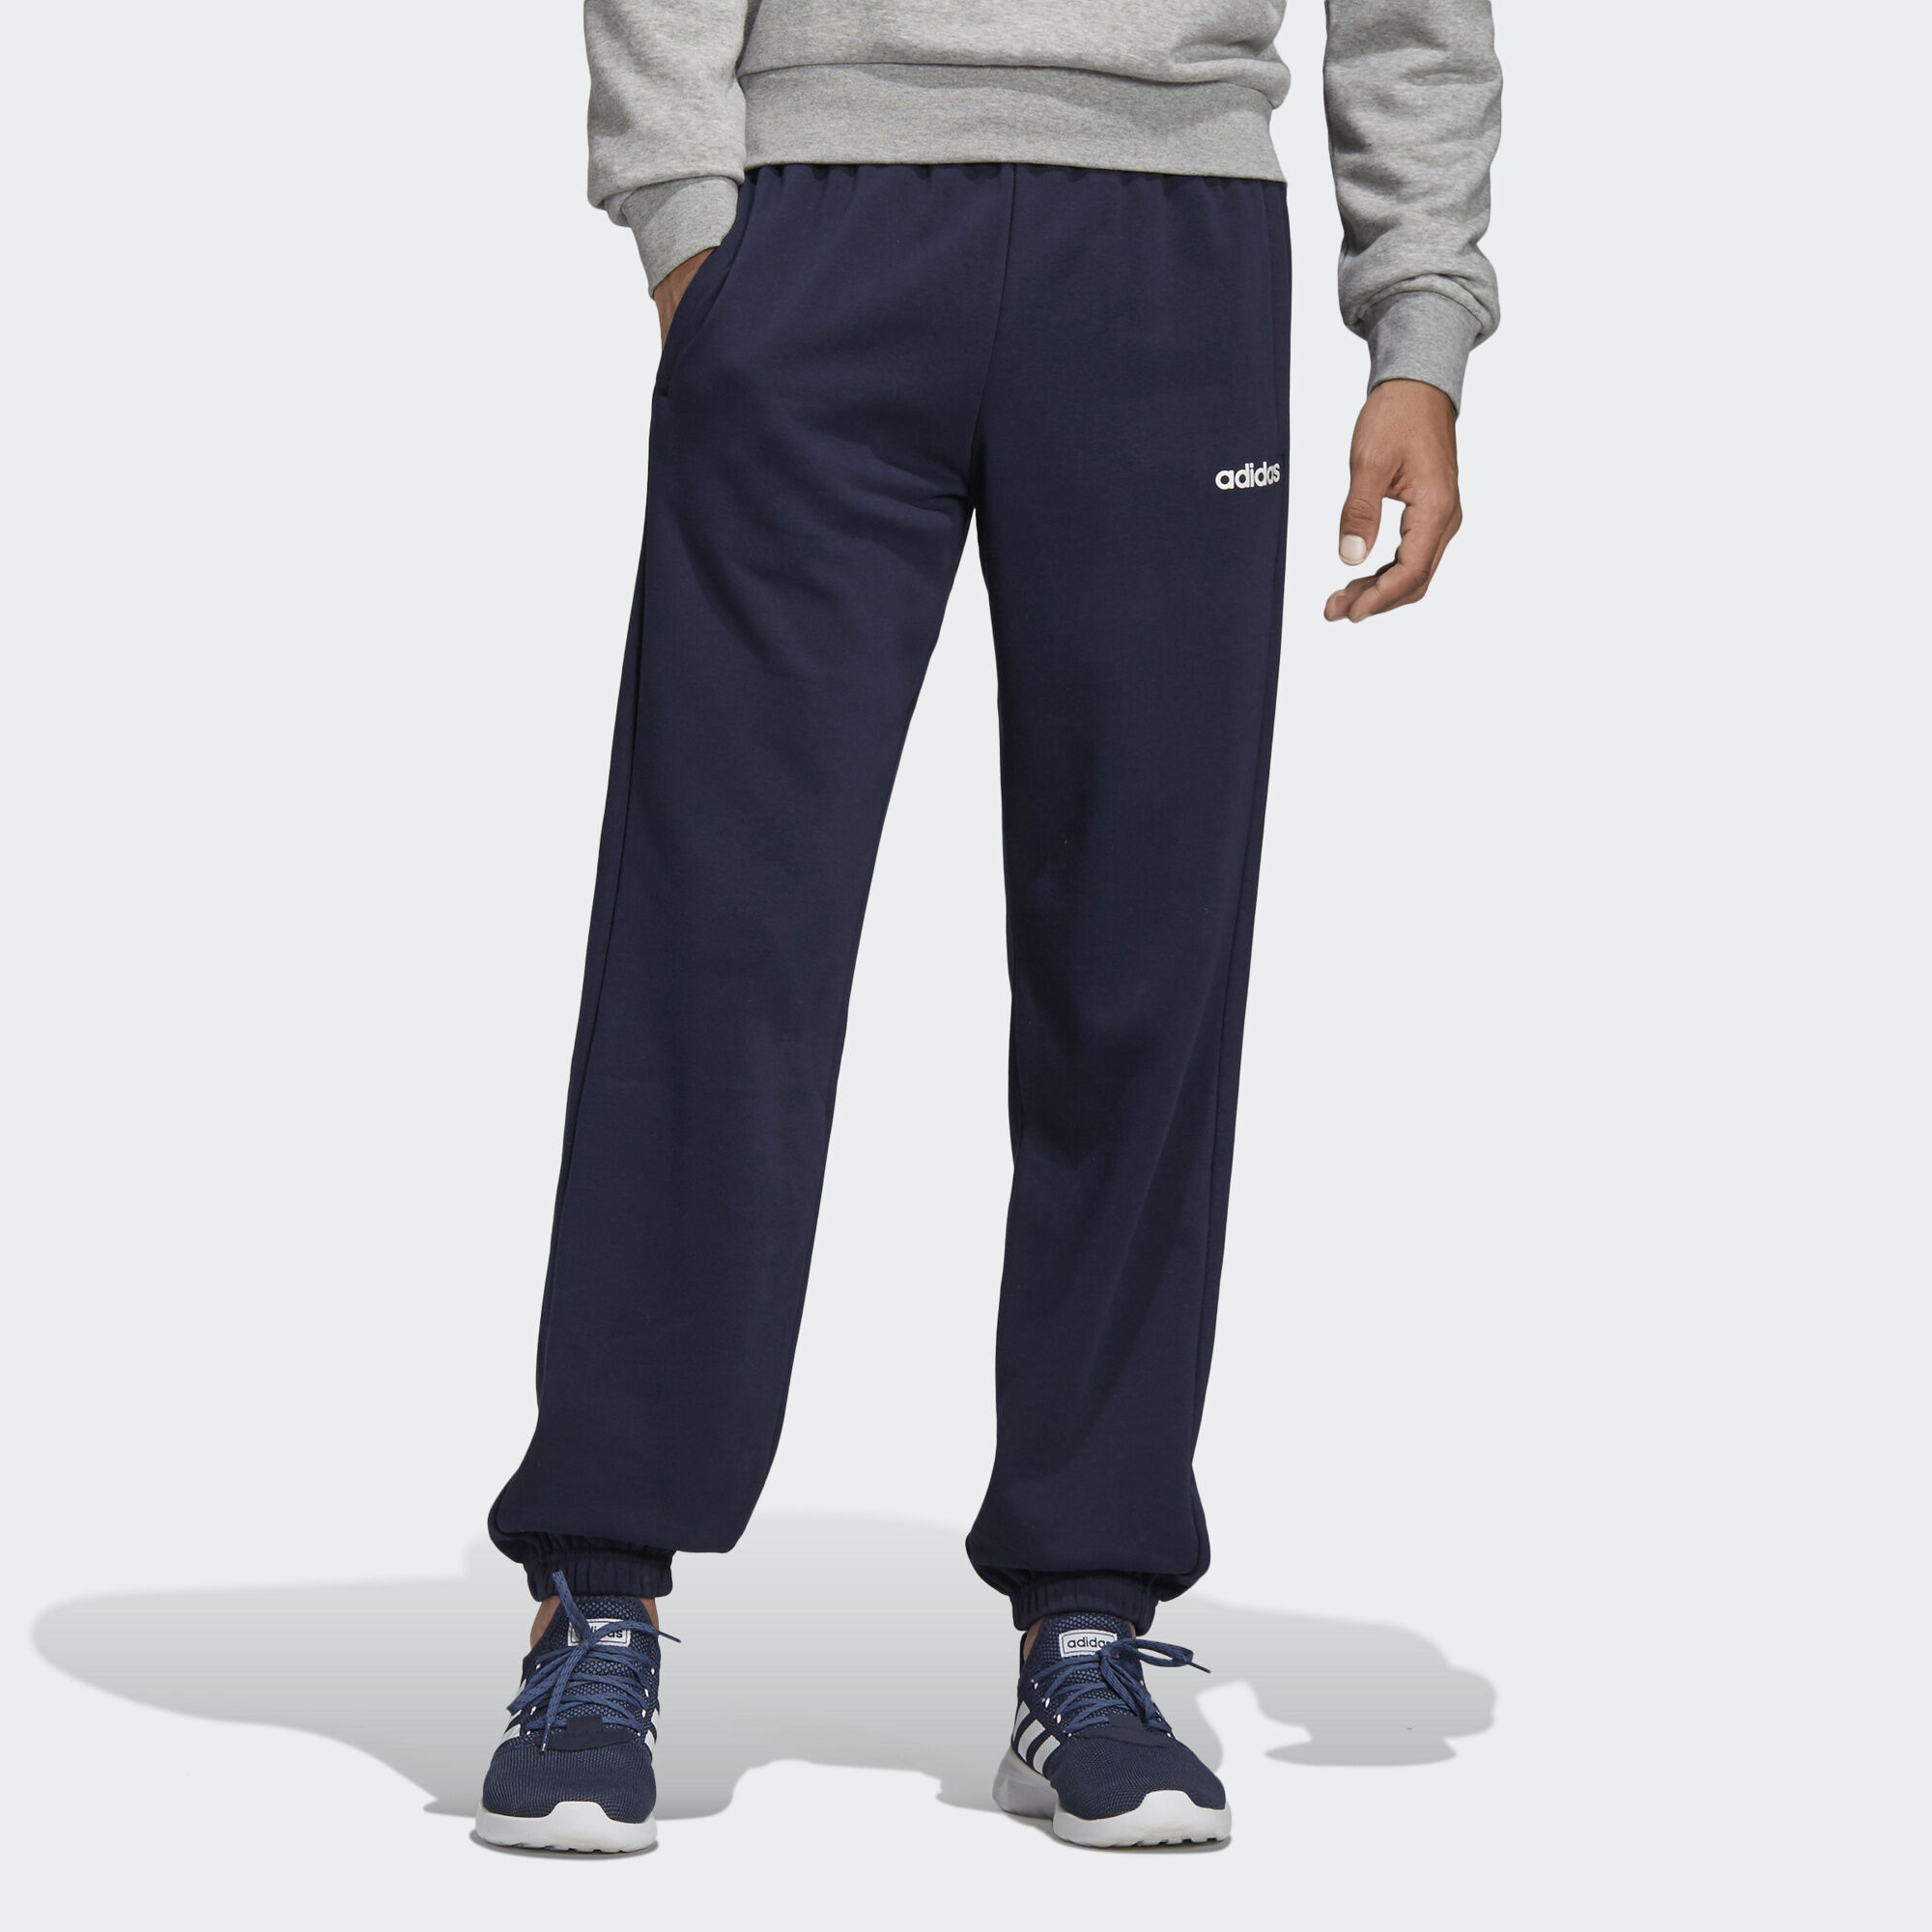 Брюки-джоггеры Essentials adidas Essentials